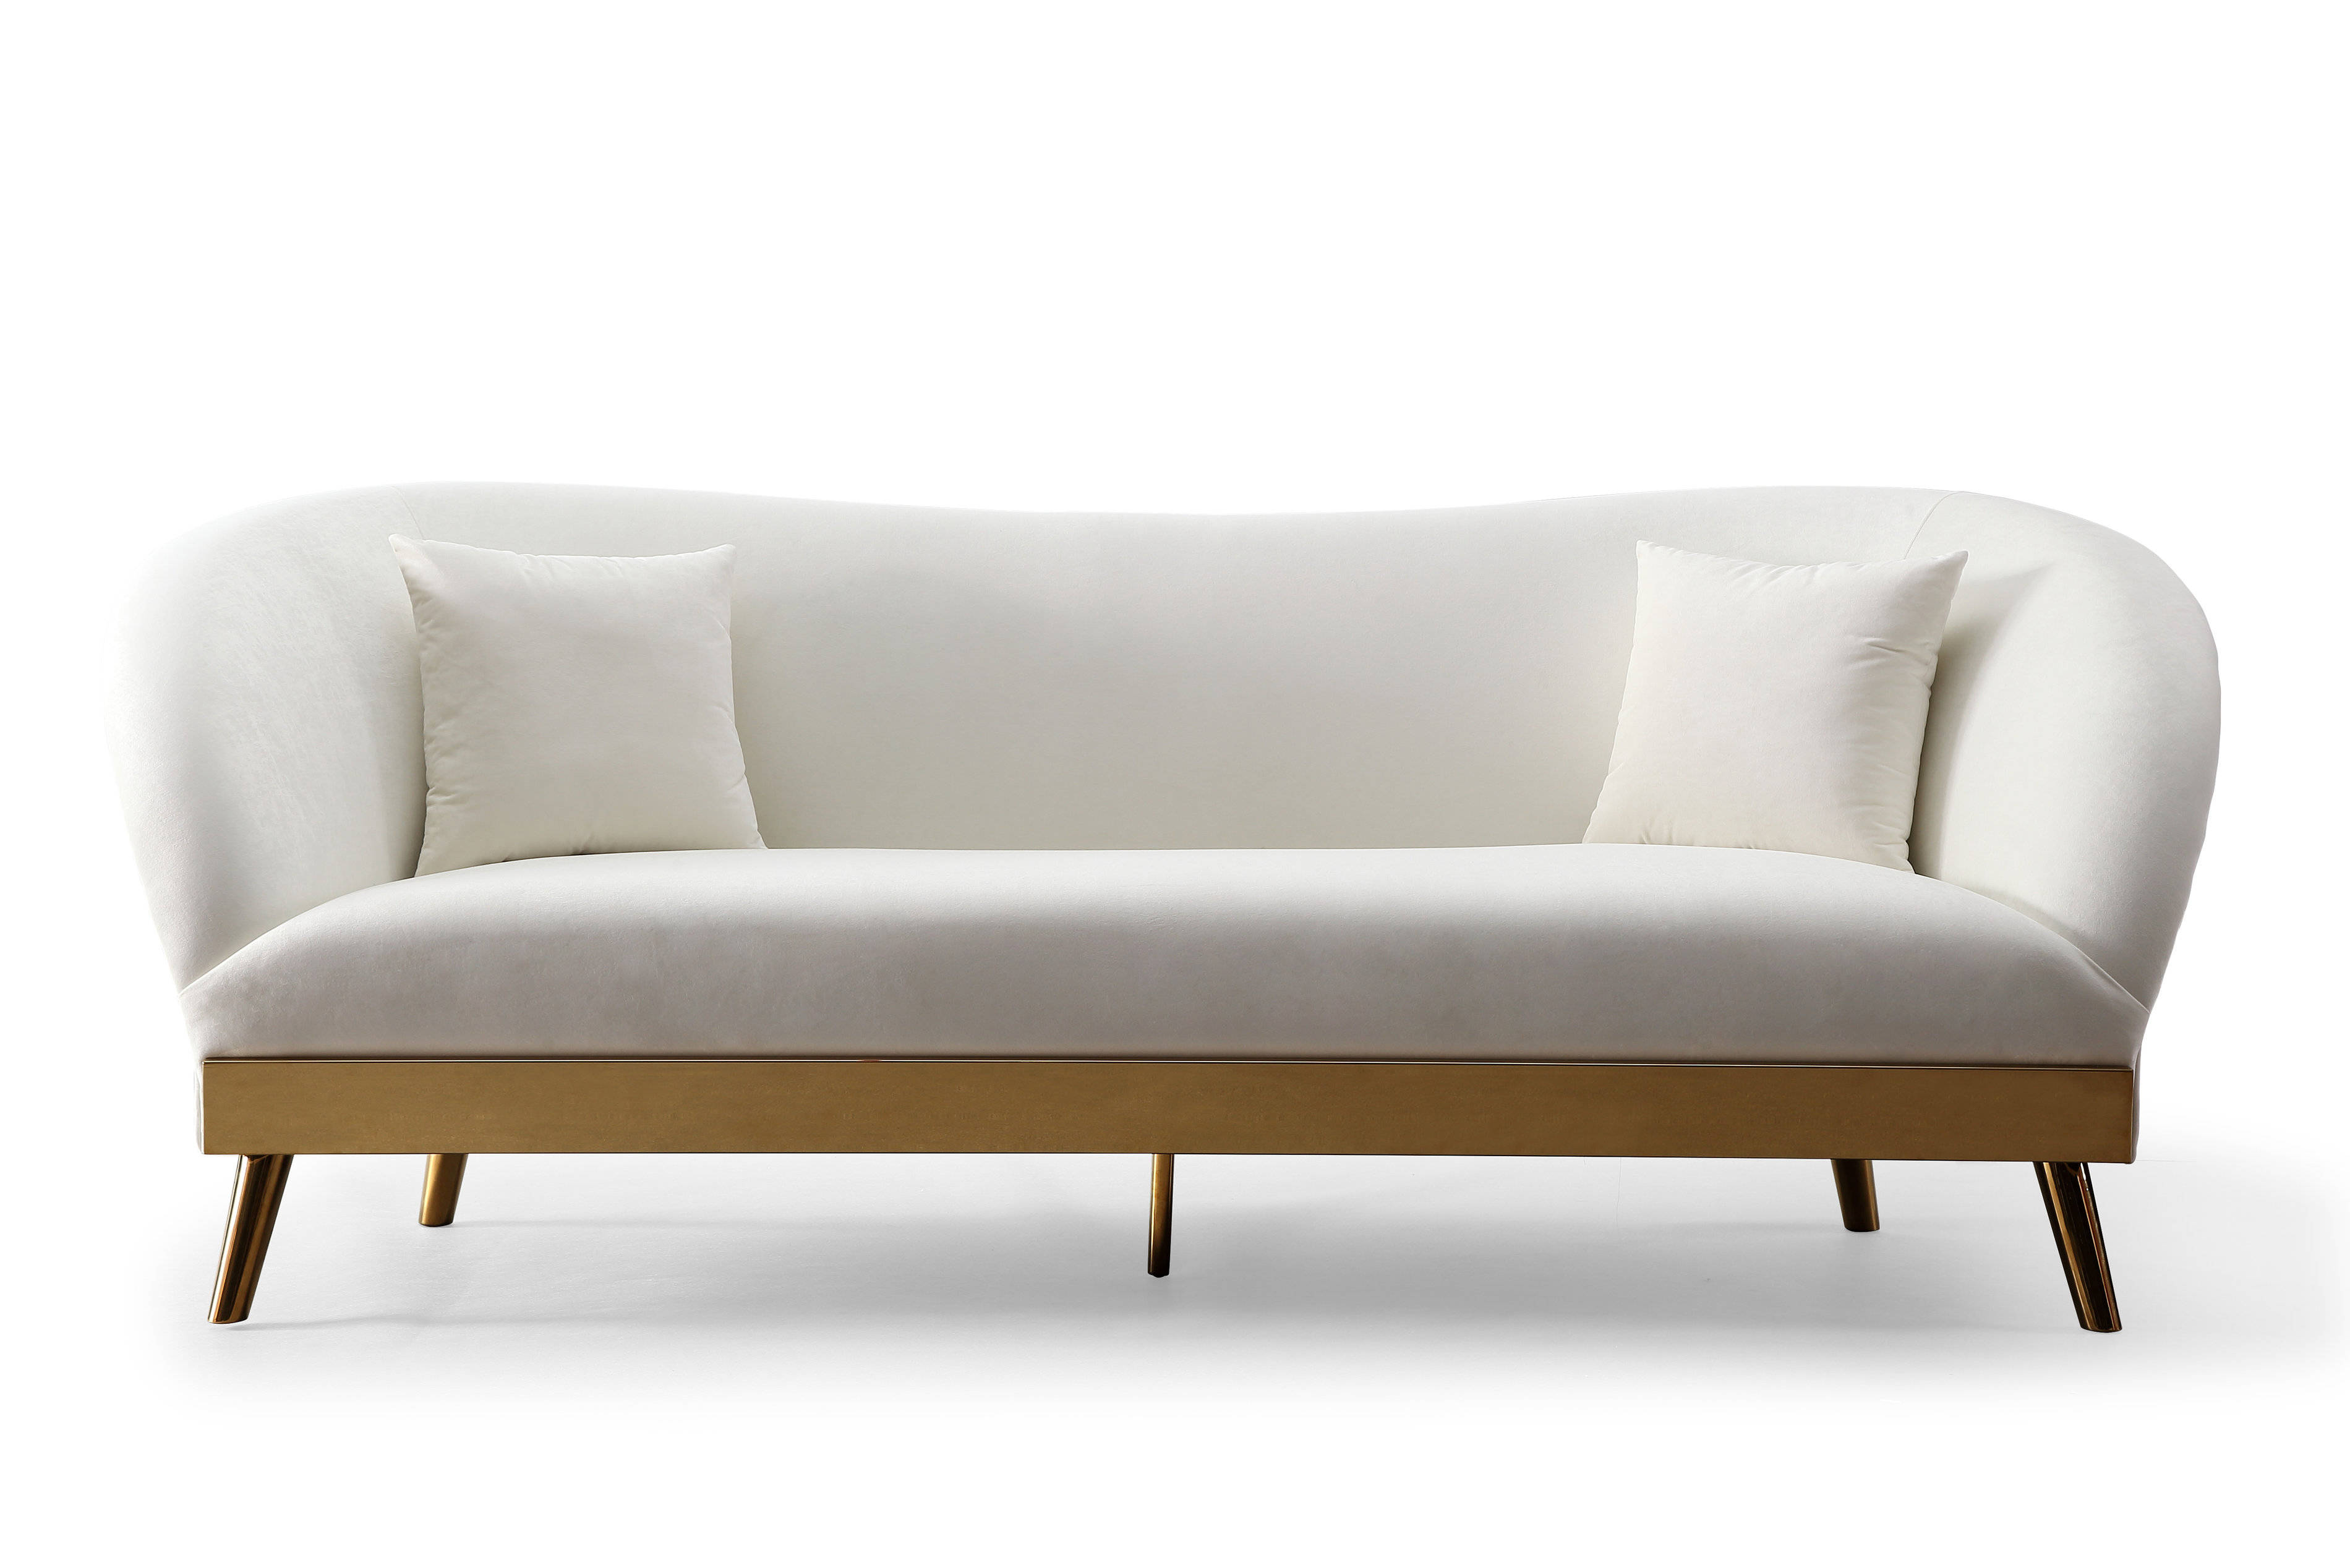 Tov Furniture Chloe Cream Velvet Sofa The Classy Home